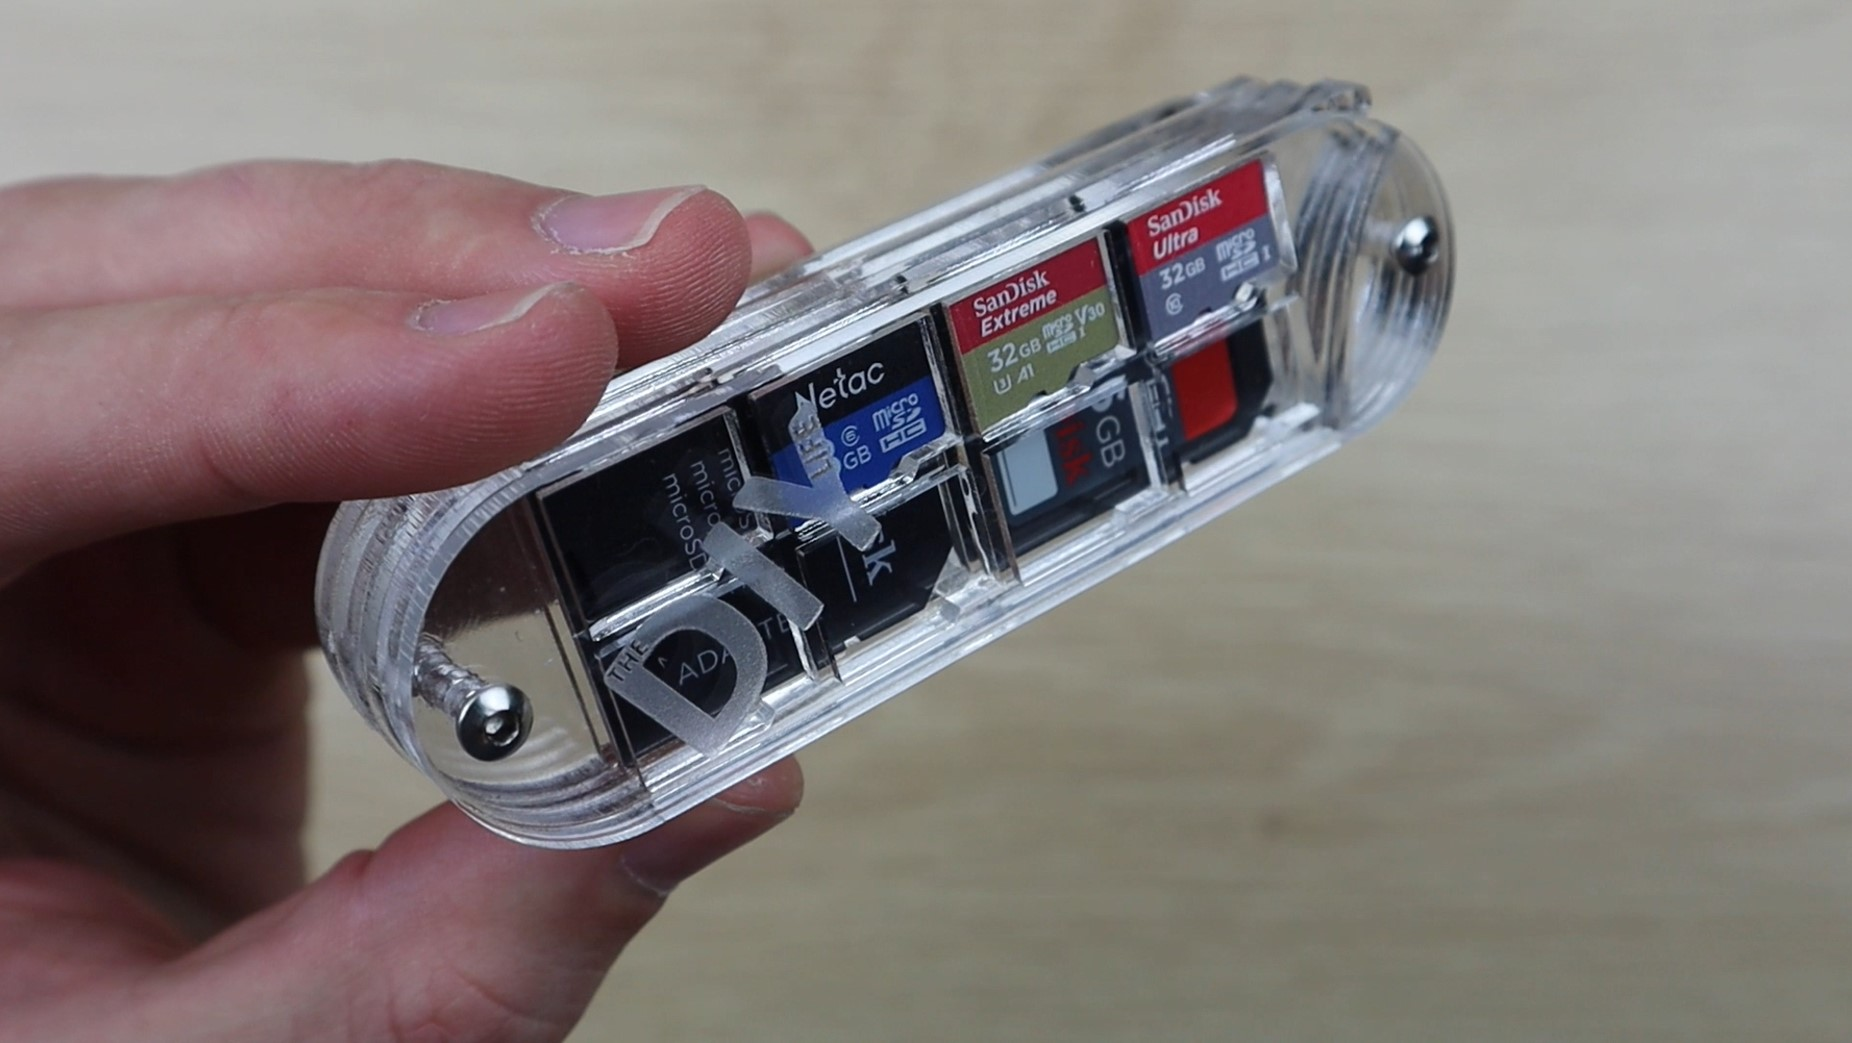 Acrylic SD Card Storage Case Complete